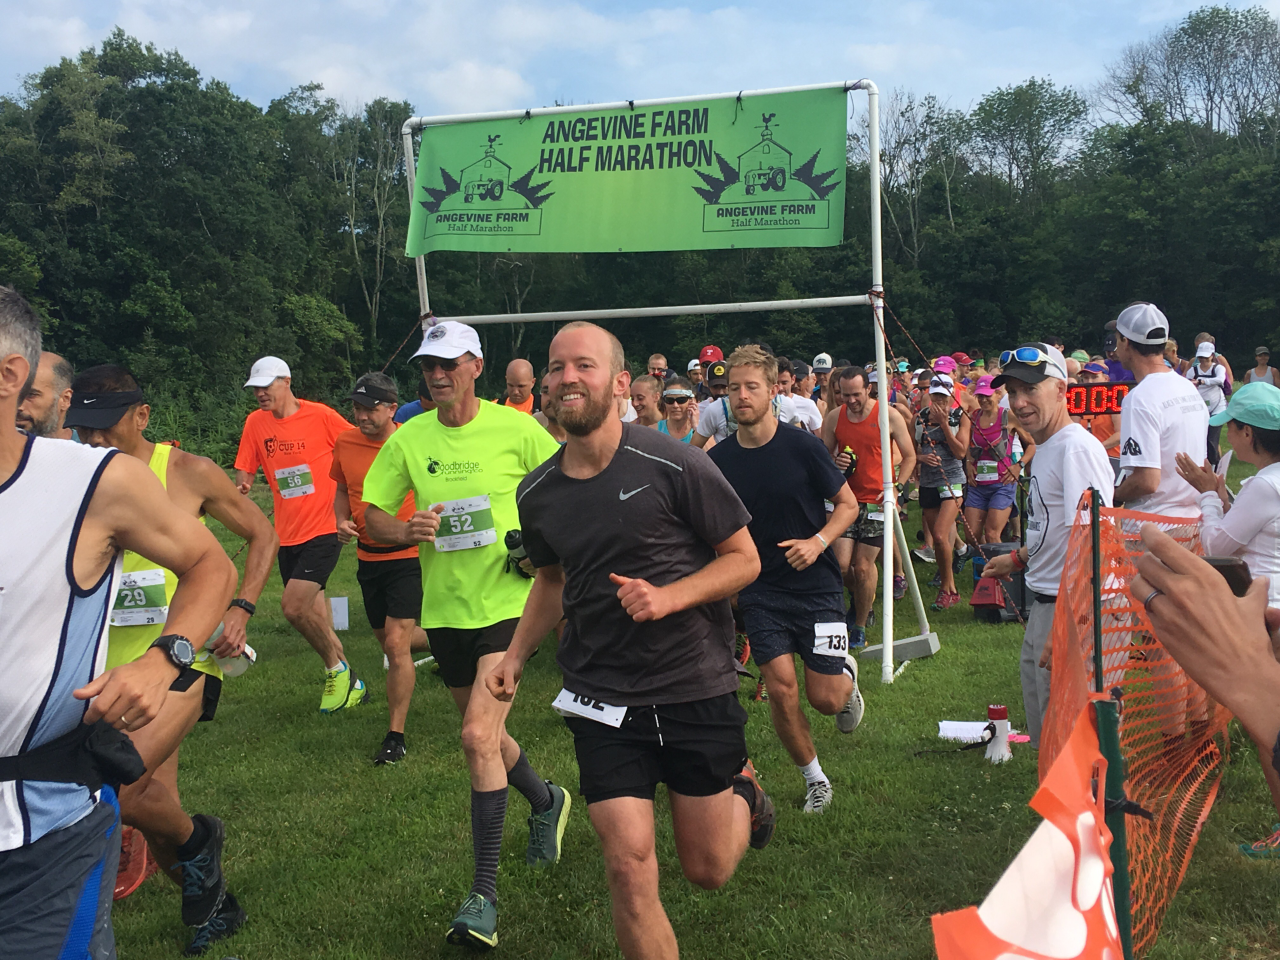 Angevine trail run - race start.png